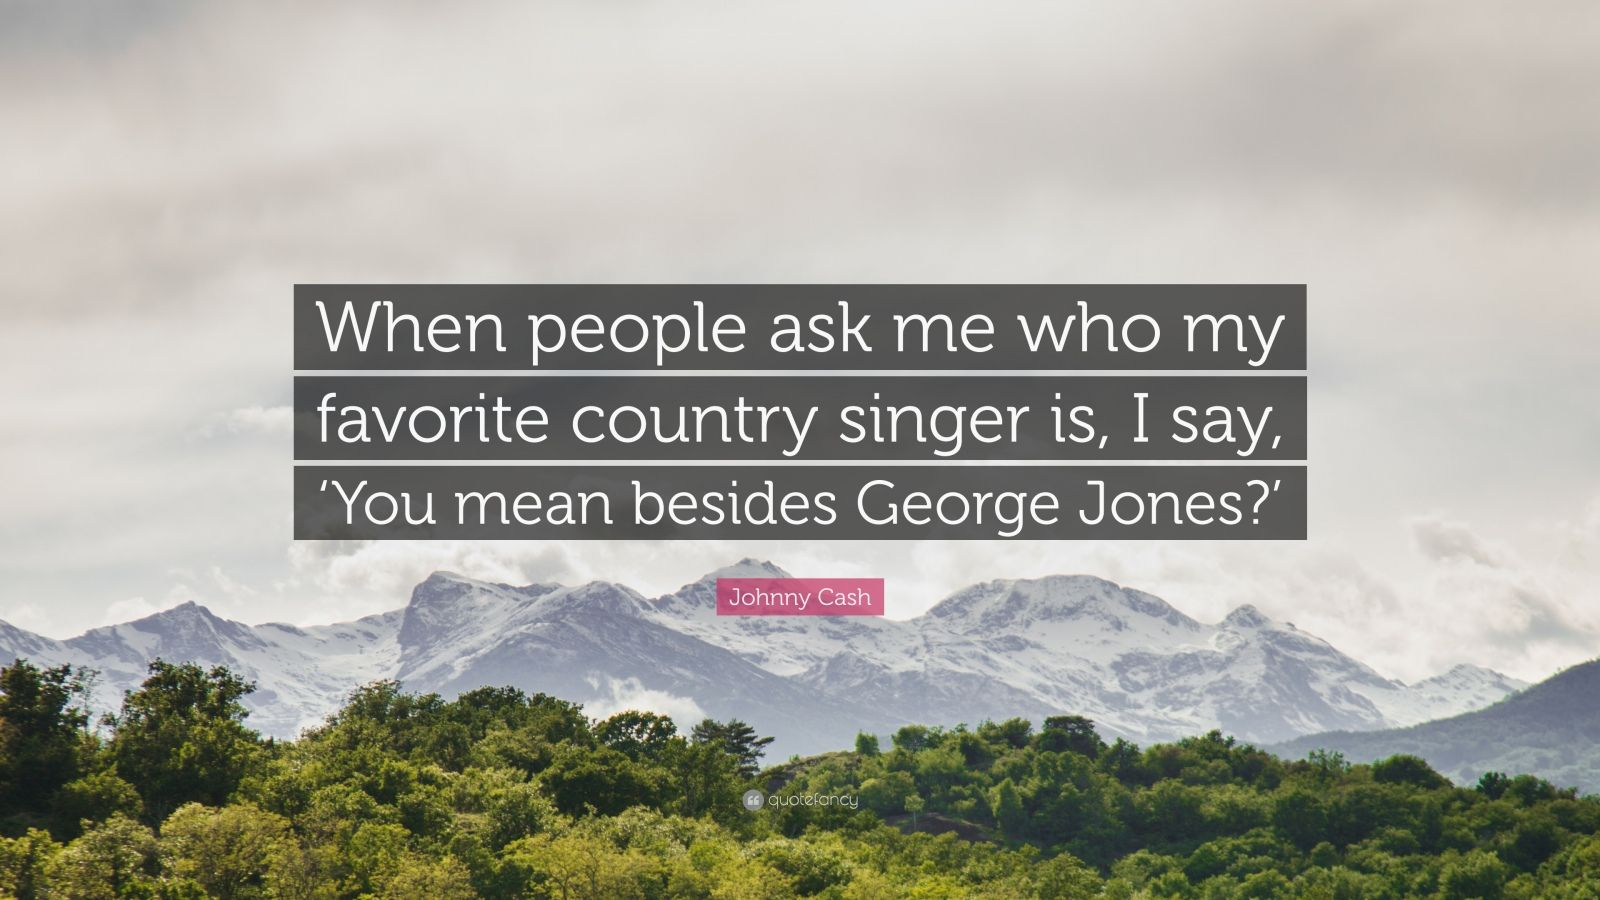 """Johnny Cash Quote: """"When people ask me who my favorite country singer is, I say, 'You mean besides George Jones?'"""""""